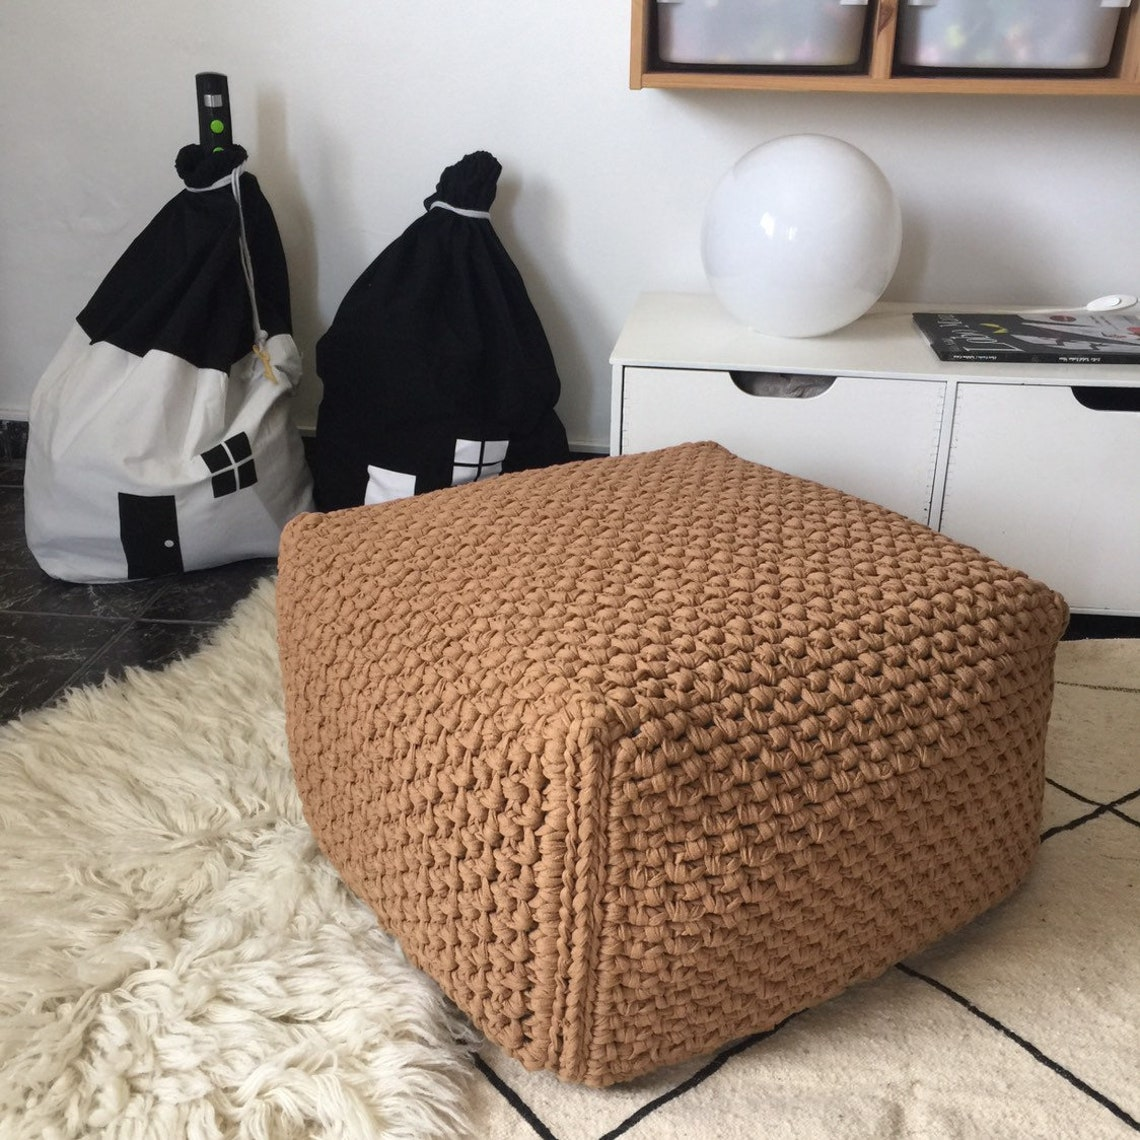 Square Ottoman Slipcover, Crochet Pouf Stool Cover, Bespoke Knit Cover